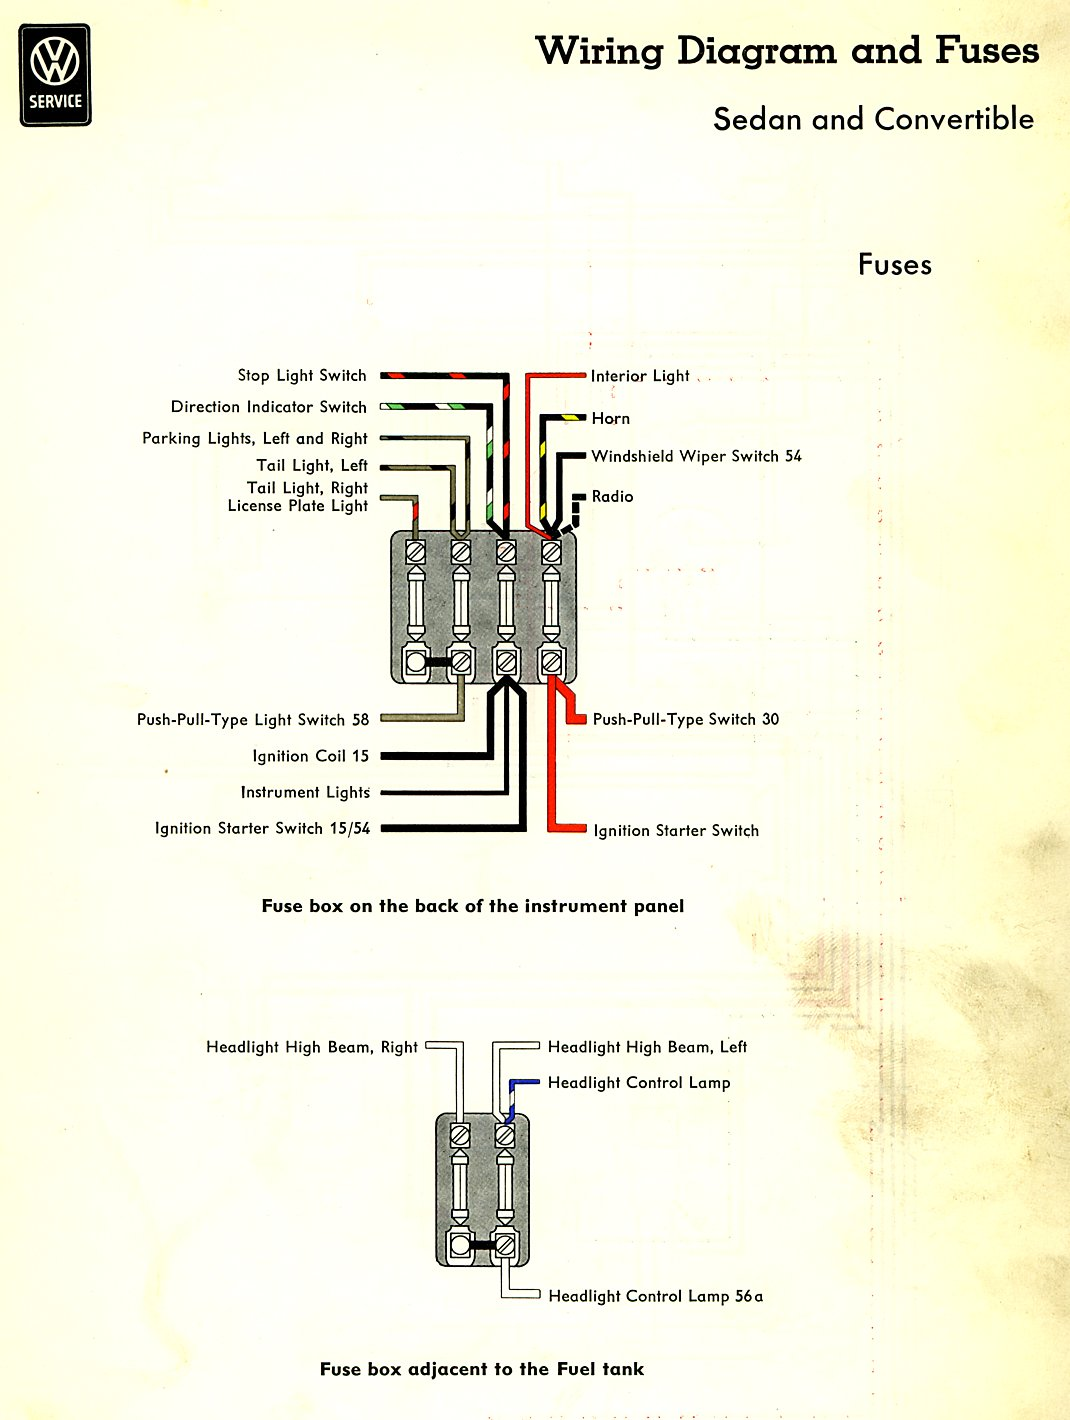 Type 1 Wiring Diagrams 1972 Jeep Cj5 Headlight Switch Diagram